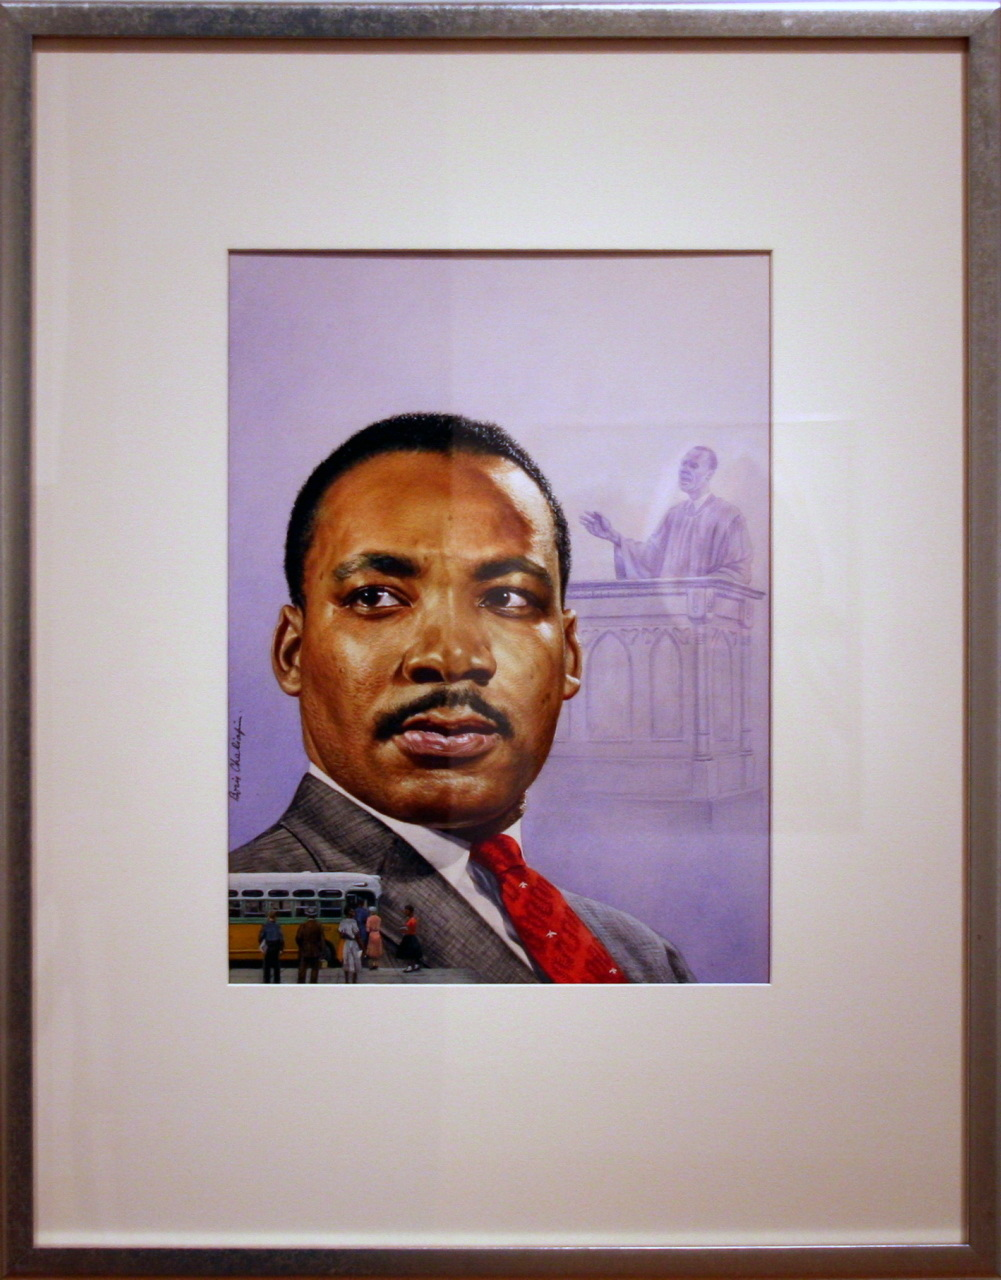 martin luther king jr 6 essay Martin luther king jr, was a noble man, who had an eventful life martin luther king jr is a symbol of social justice all over the united states.